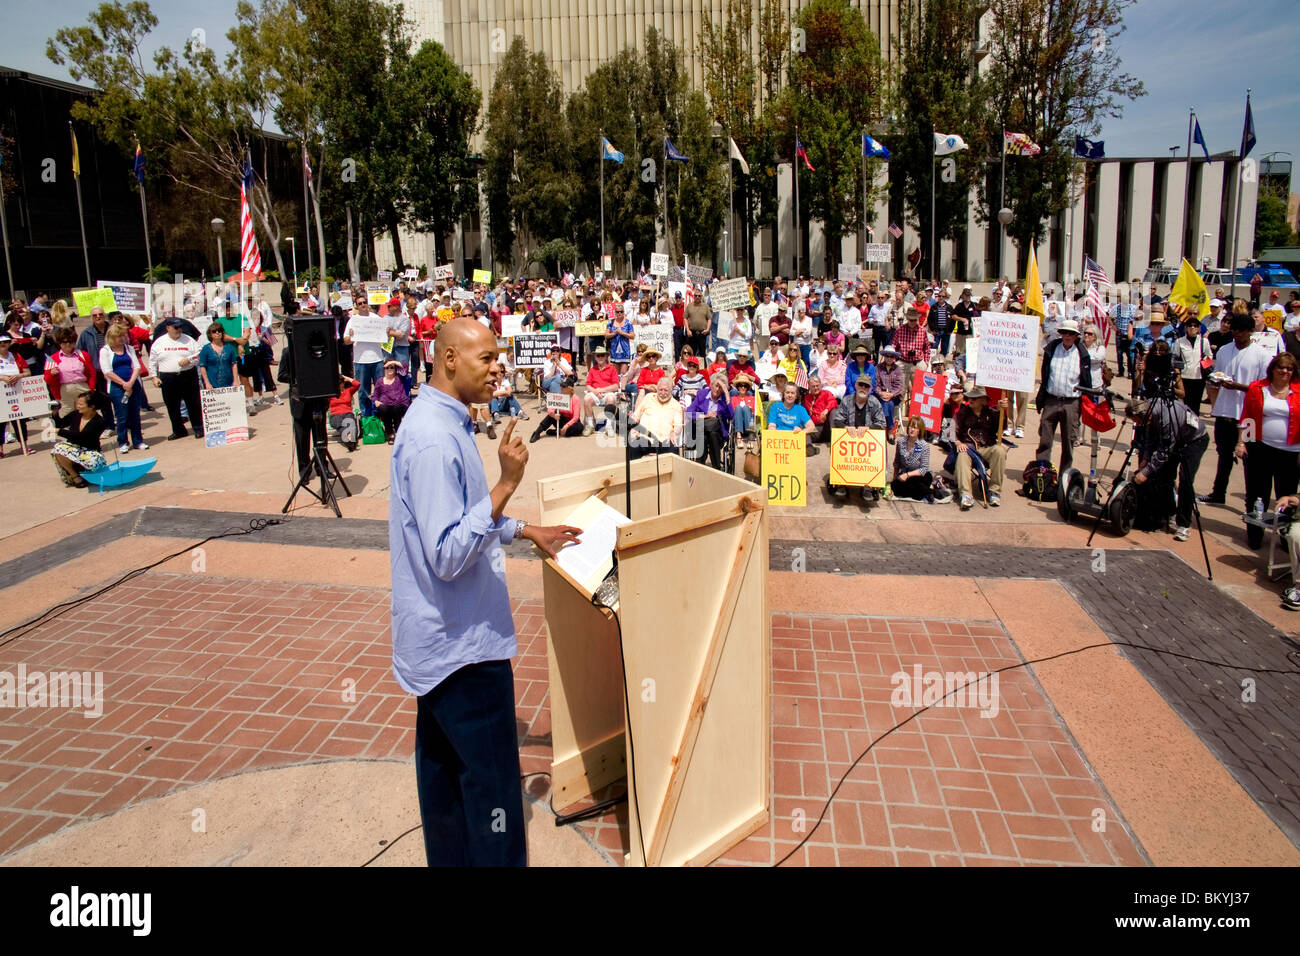 """An angry African American speaker harangues the crowd at a """"Tea Party"""" rally on April 15 (Tax Day) in Santa Ana, Stock Photo"""